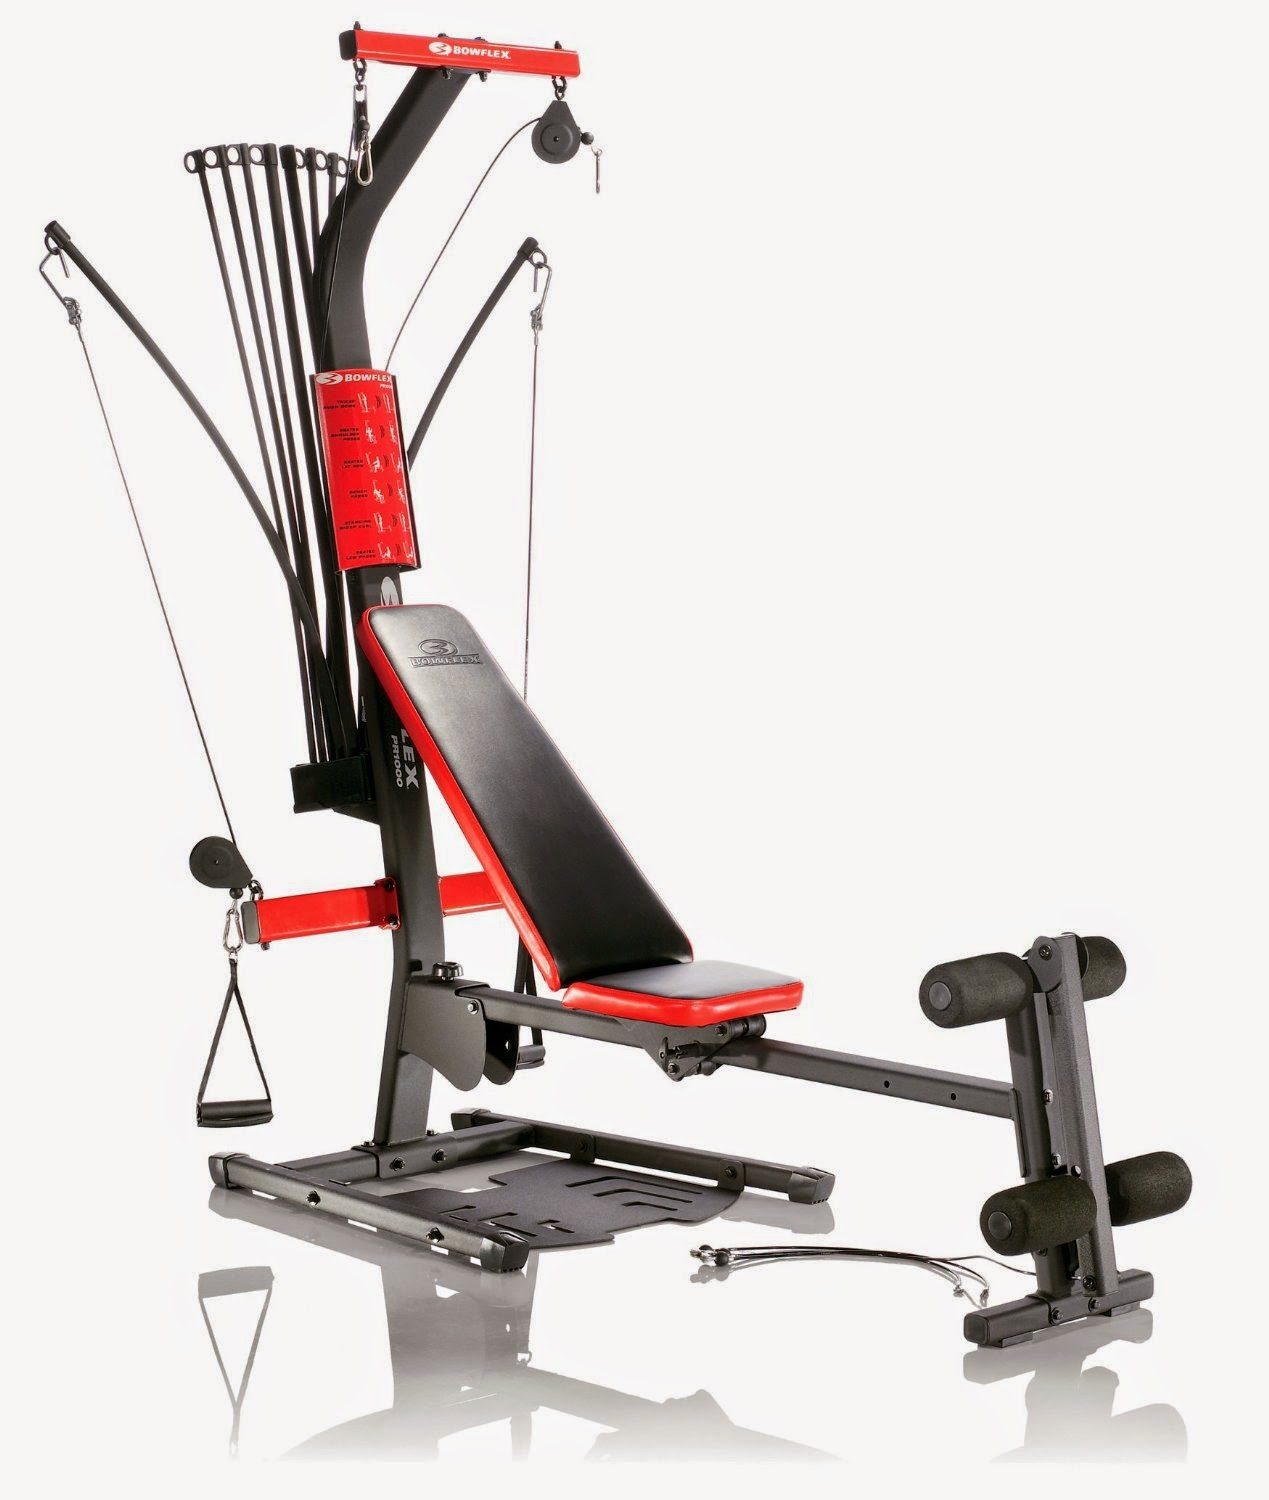 Health and fitness den bowflex pr versus